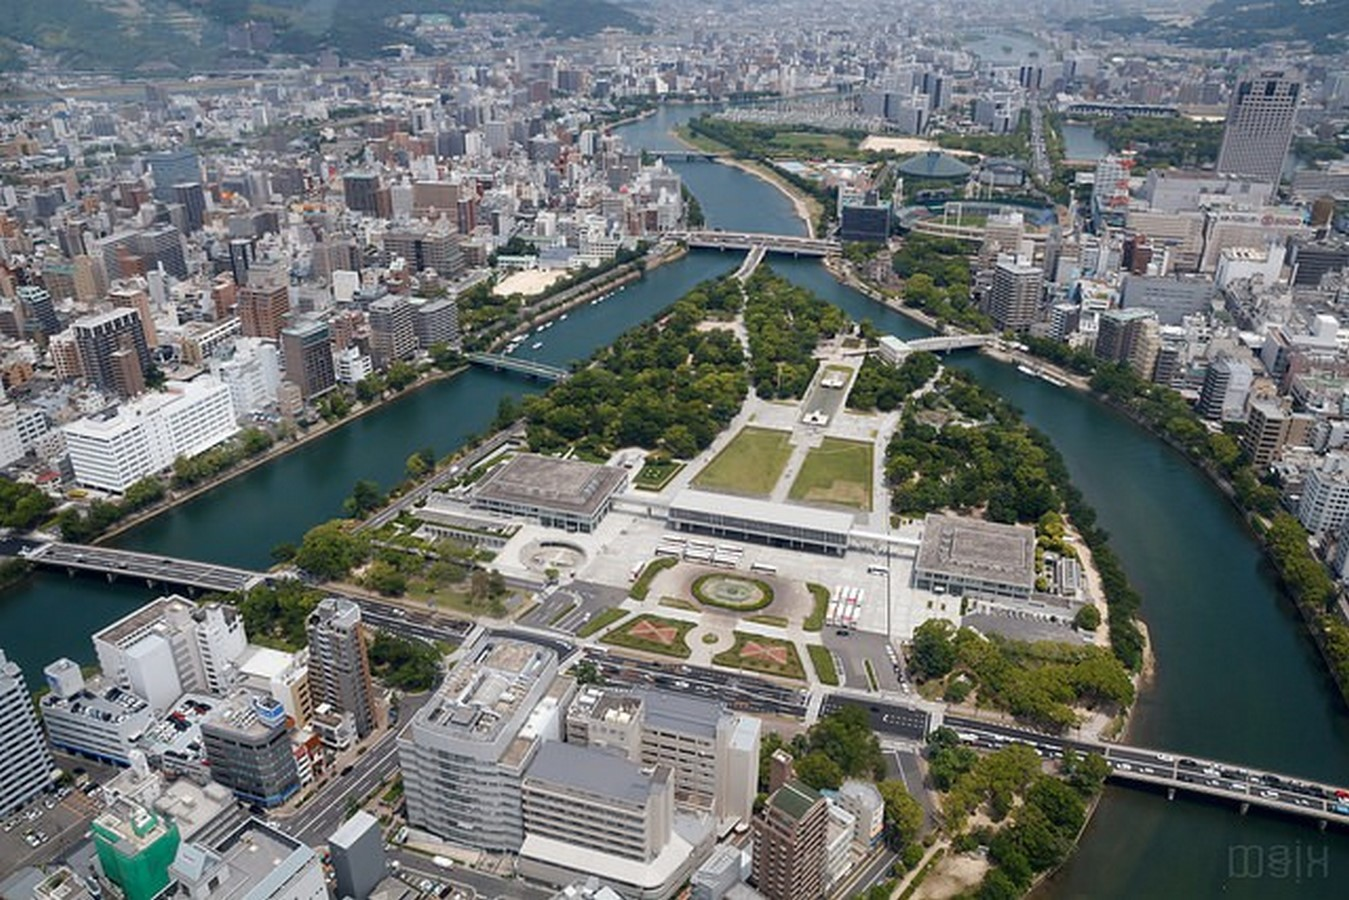 Hiroshima peace Center and memorial park by Kenzo Tange: Symbolizing devotion to peace - Sheet5